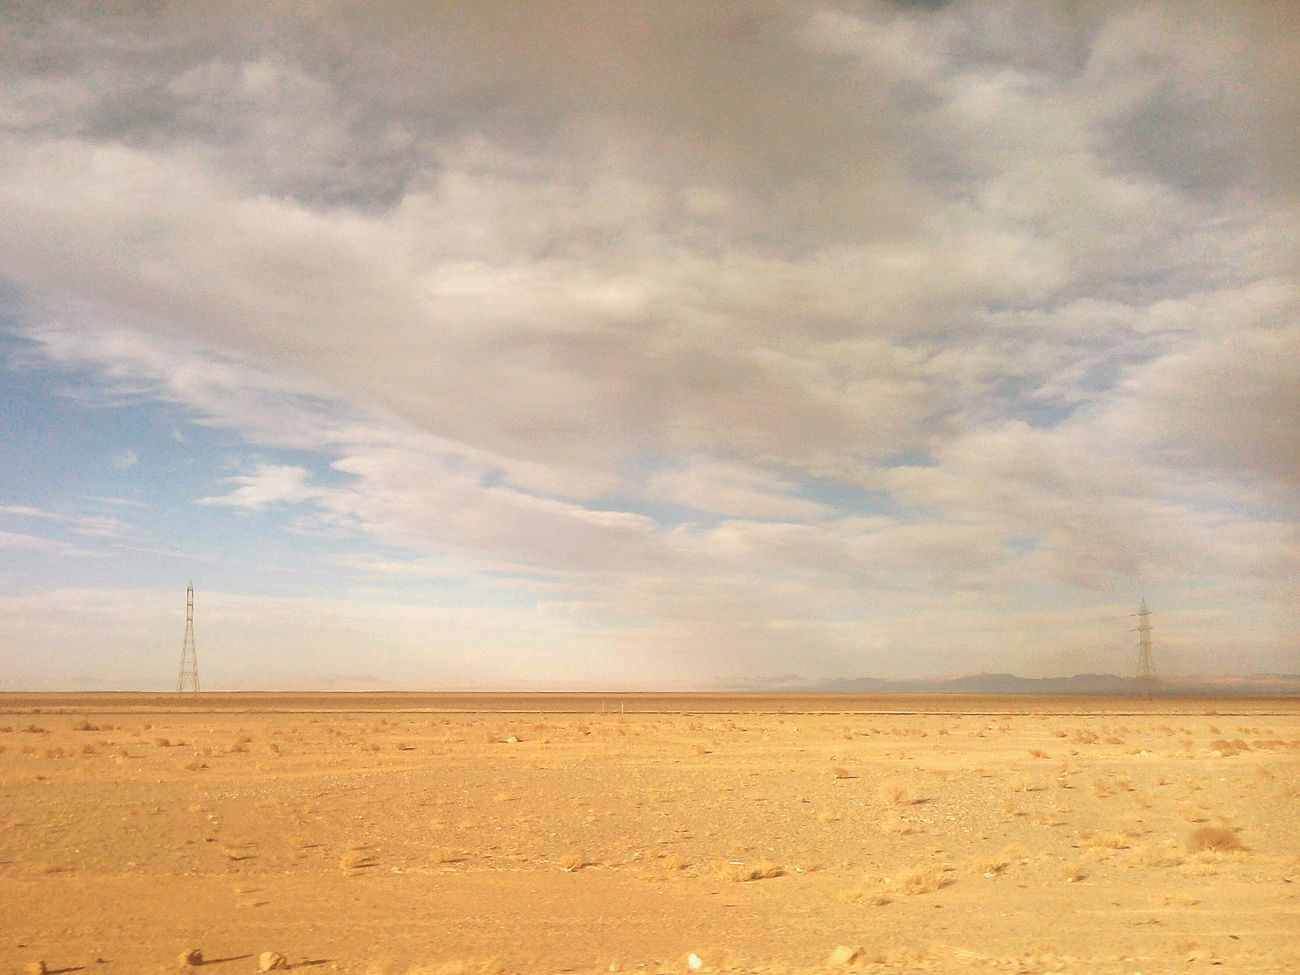 Kianush Eyeemphoto Sky Eye4photography  Artphoto EyeEm Gallery Minimalism EyeEmBestPics Skyporn First Eyeem Photo Sound Of Life Hello World Old Phone Photo Natural It's Follow Friday! Vintage